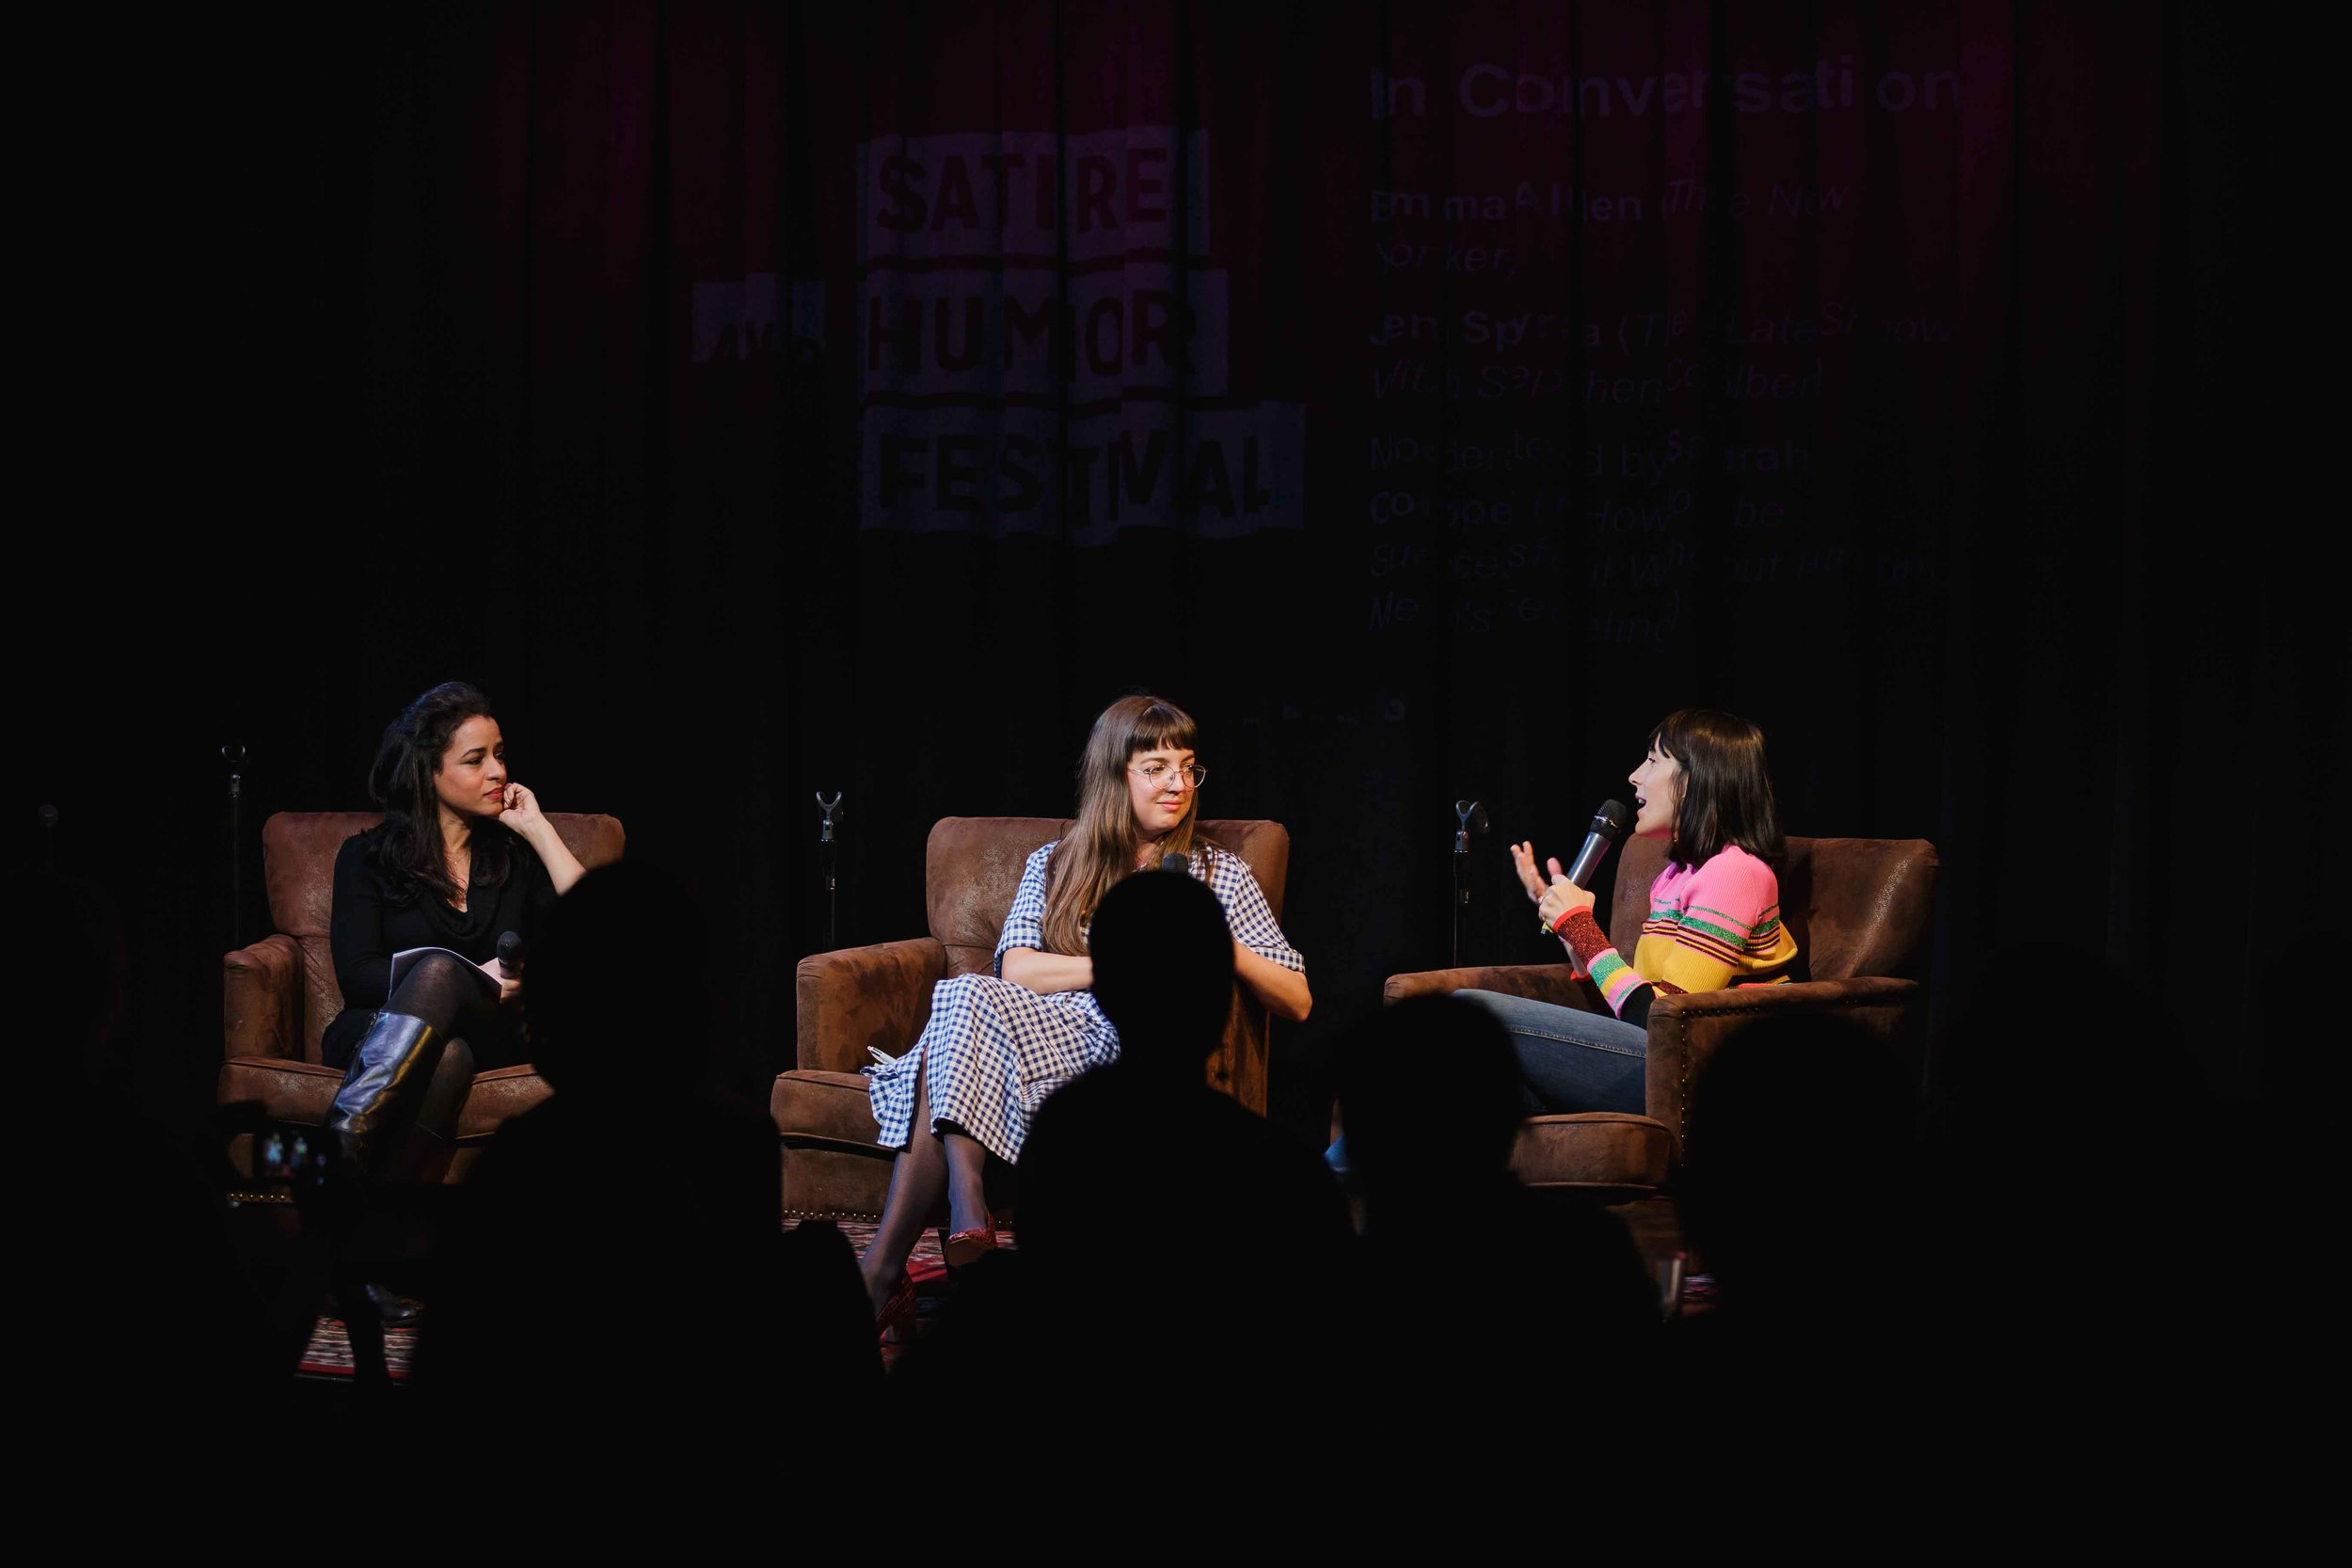 Jen Spyra, Emma Allen, and Sarah Cooper speak at a panel during 2019's festival.